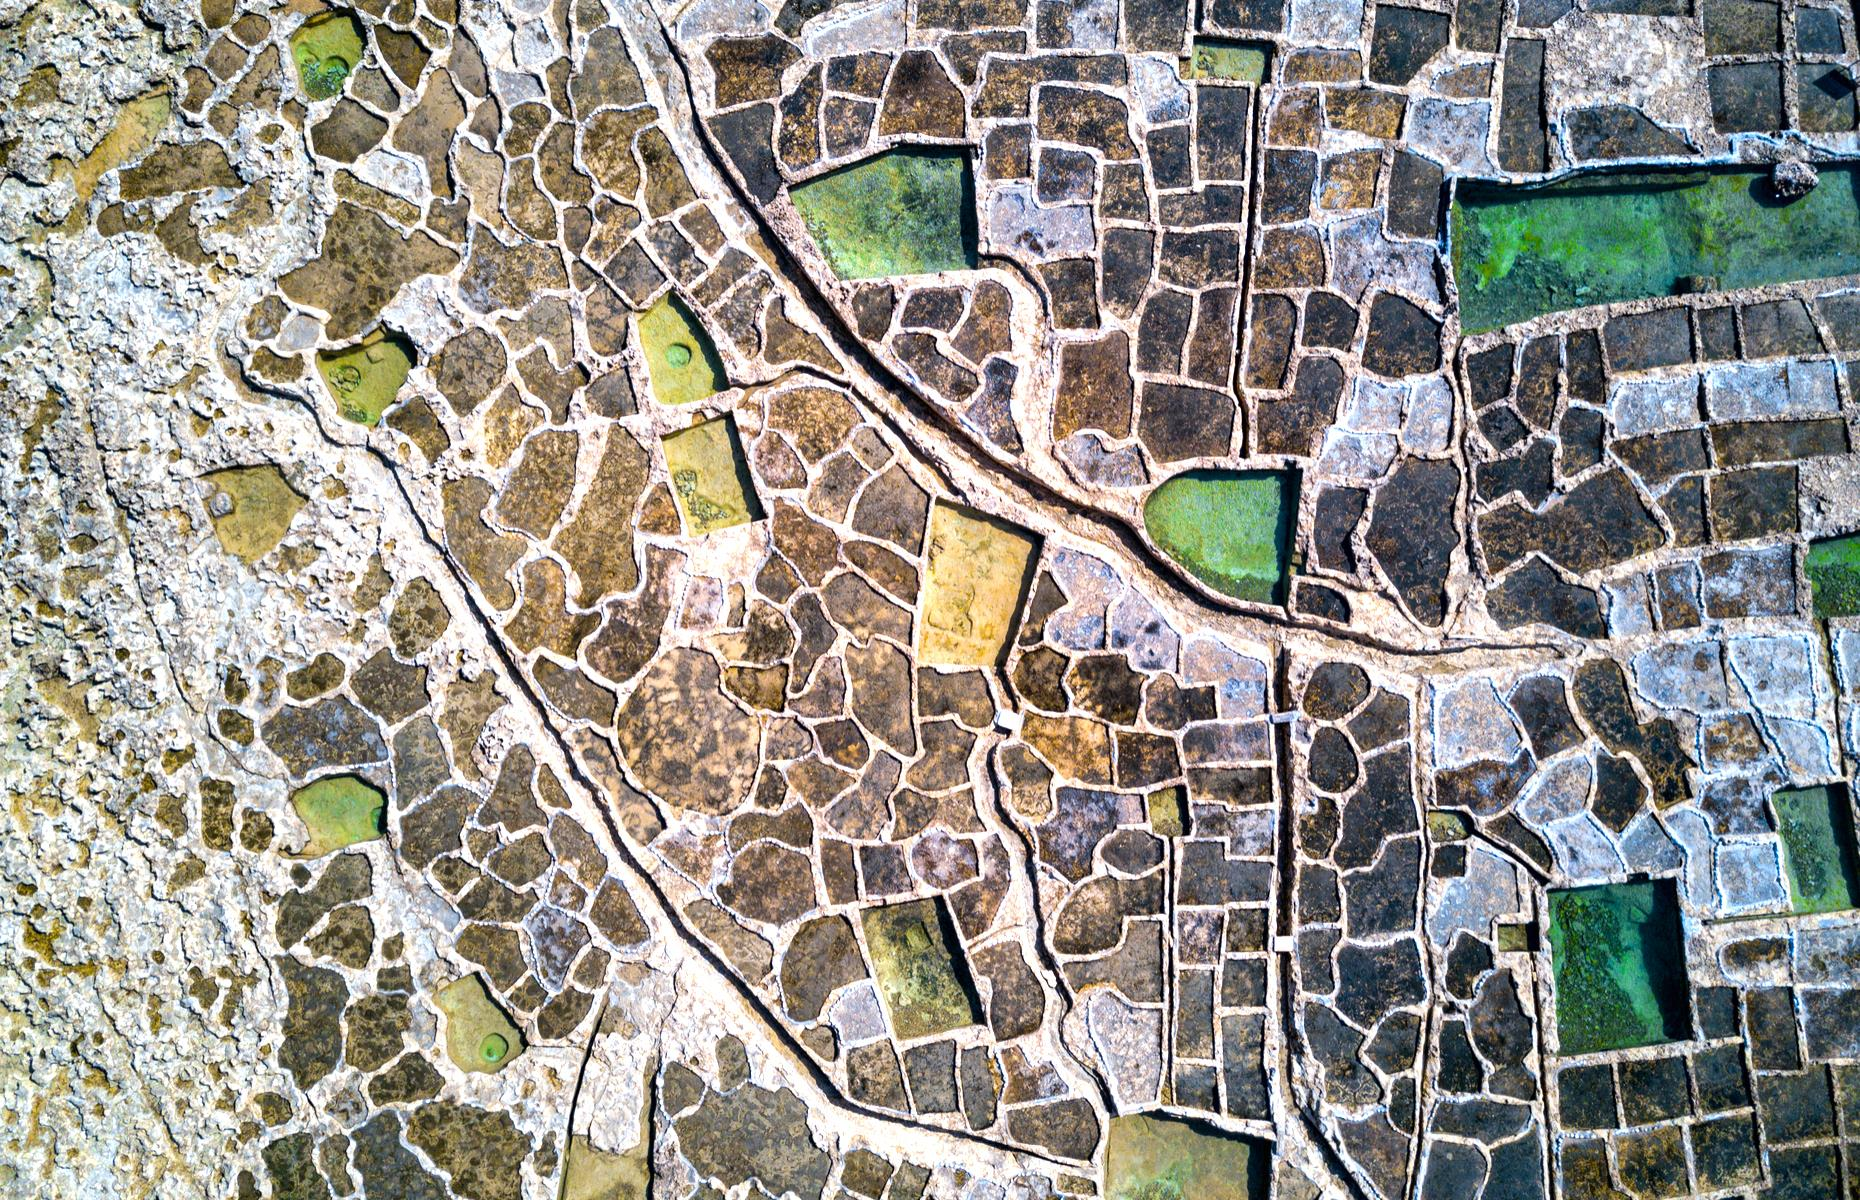 Slide 3 of 43: The pretty Maltese island of Gozo is famous for its salt production with large clusters of salt pans collecting on the north coast. From above, these pans appear like a mosaic with hues of earth brown, white and sand punctured by emerald-green water.